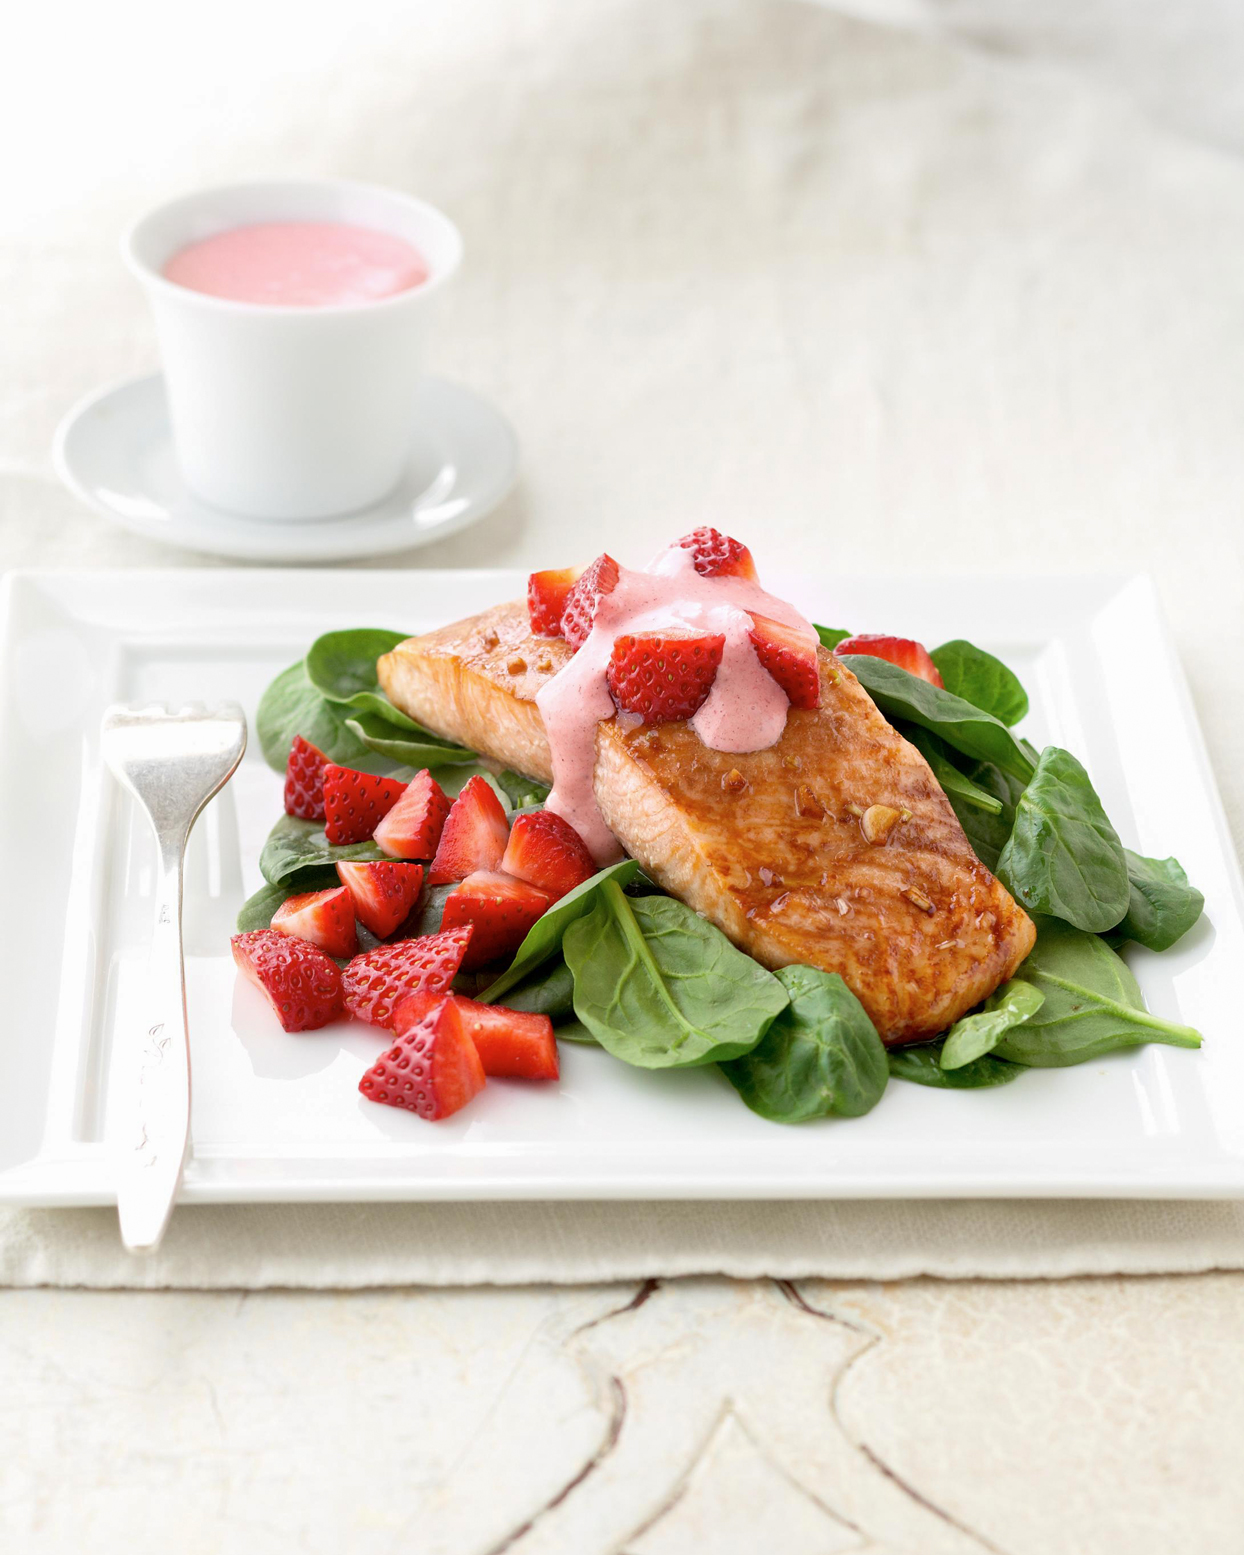 Salmon-Topped Salad with Strawberries